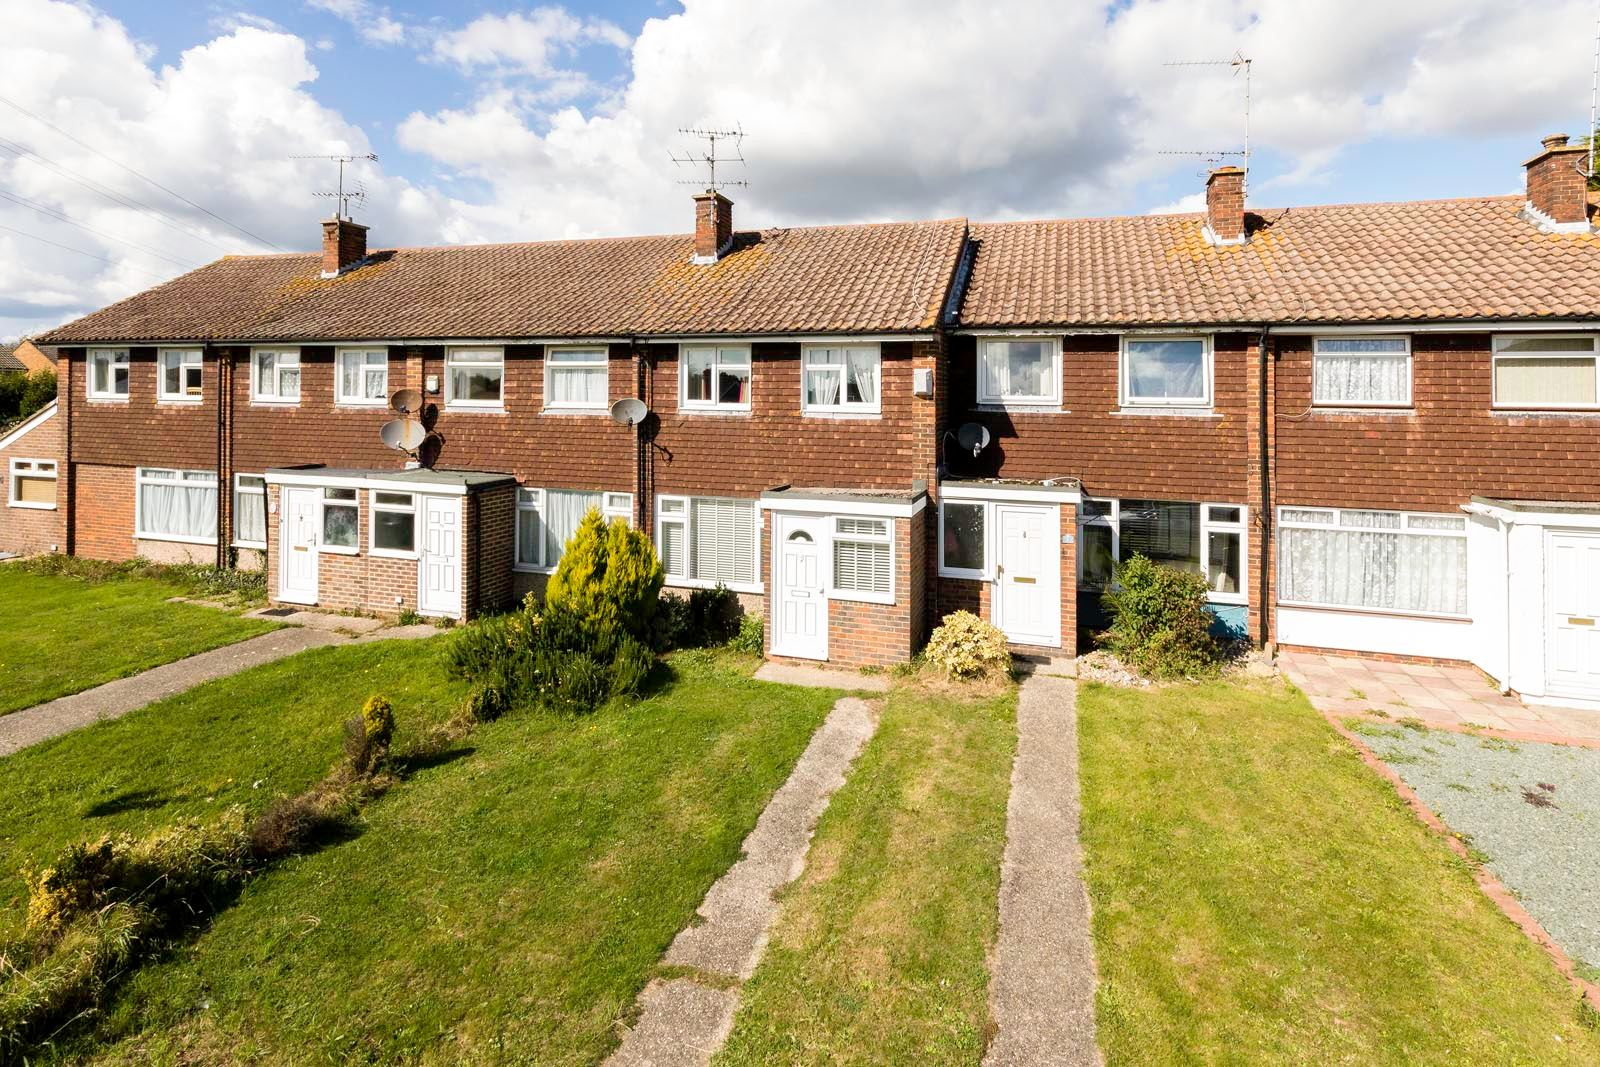 3 bed House for sale in East Preston - Elevated front shot (Property Image 0)